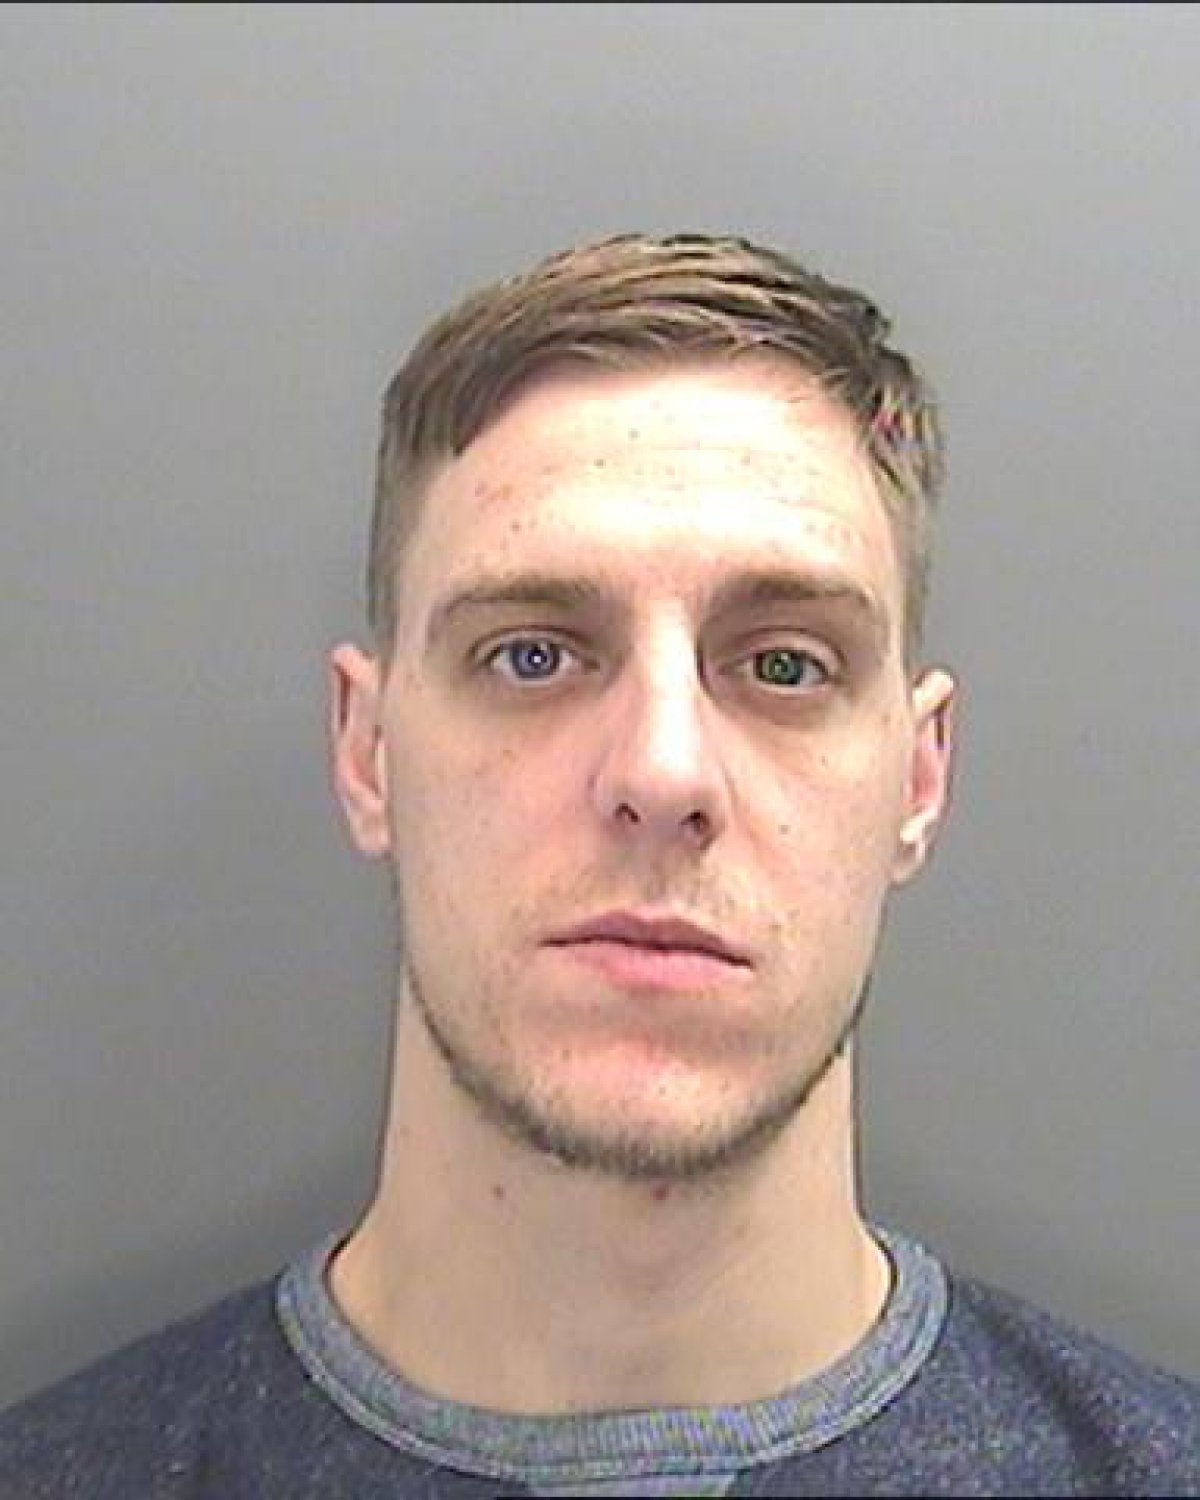 JAILED: Craig Dibble was sentenced to seven years in prison by Cardiff Crown Court